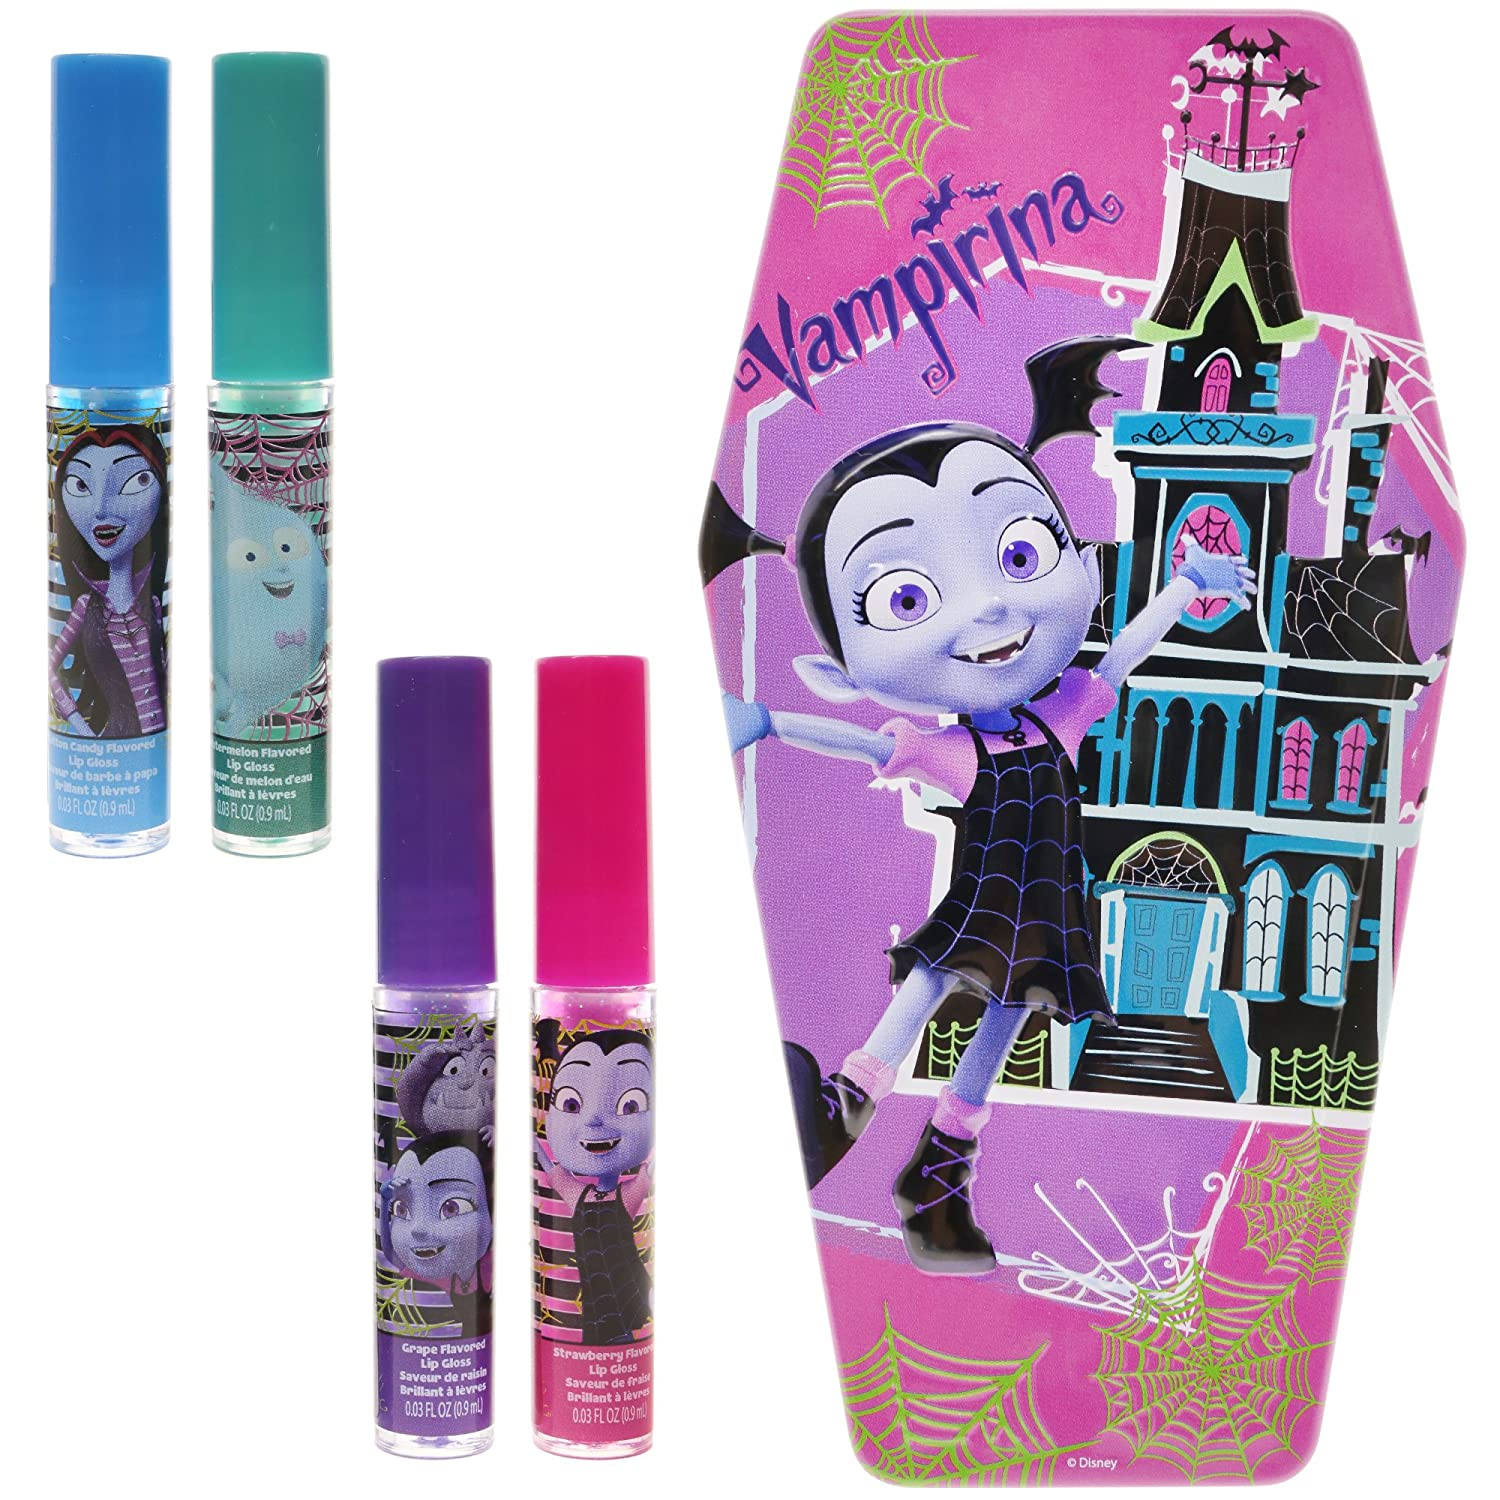 TownleyGirl Vampirina Super Sparkly Lip Gloss Set for Girls, with 4 Fruity Flavors and Decorative Coffin Case Townley Inc